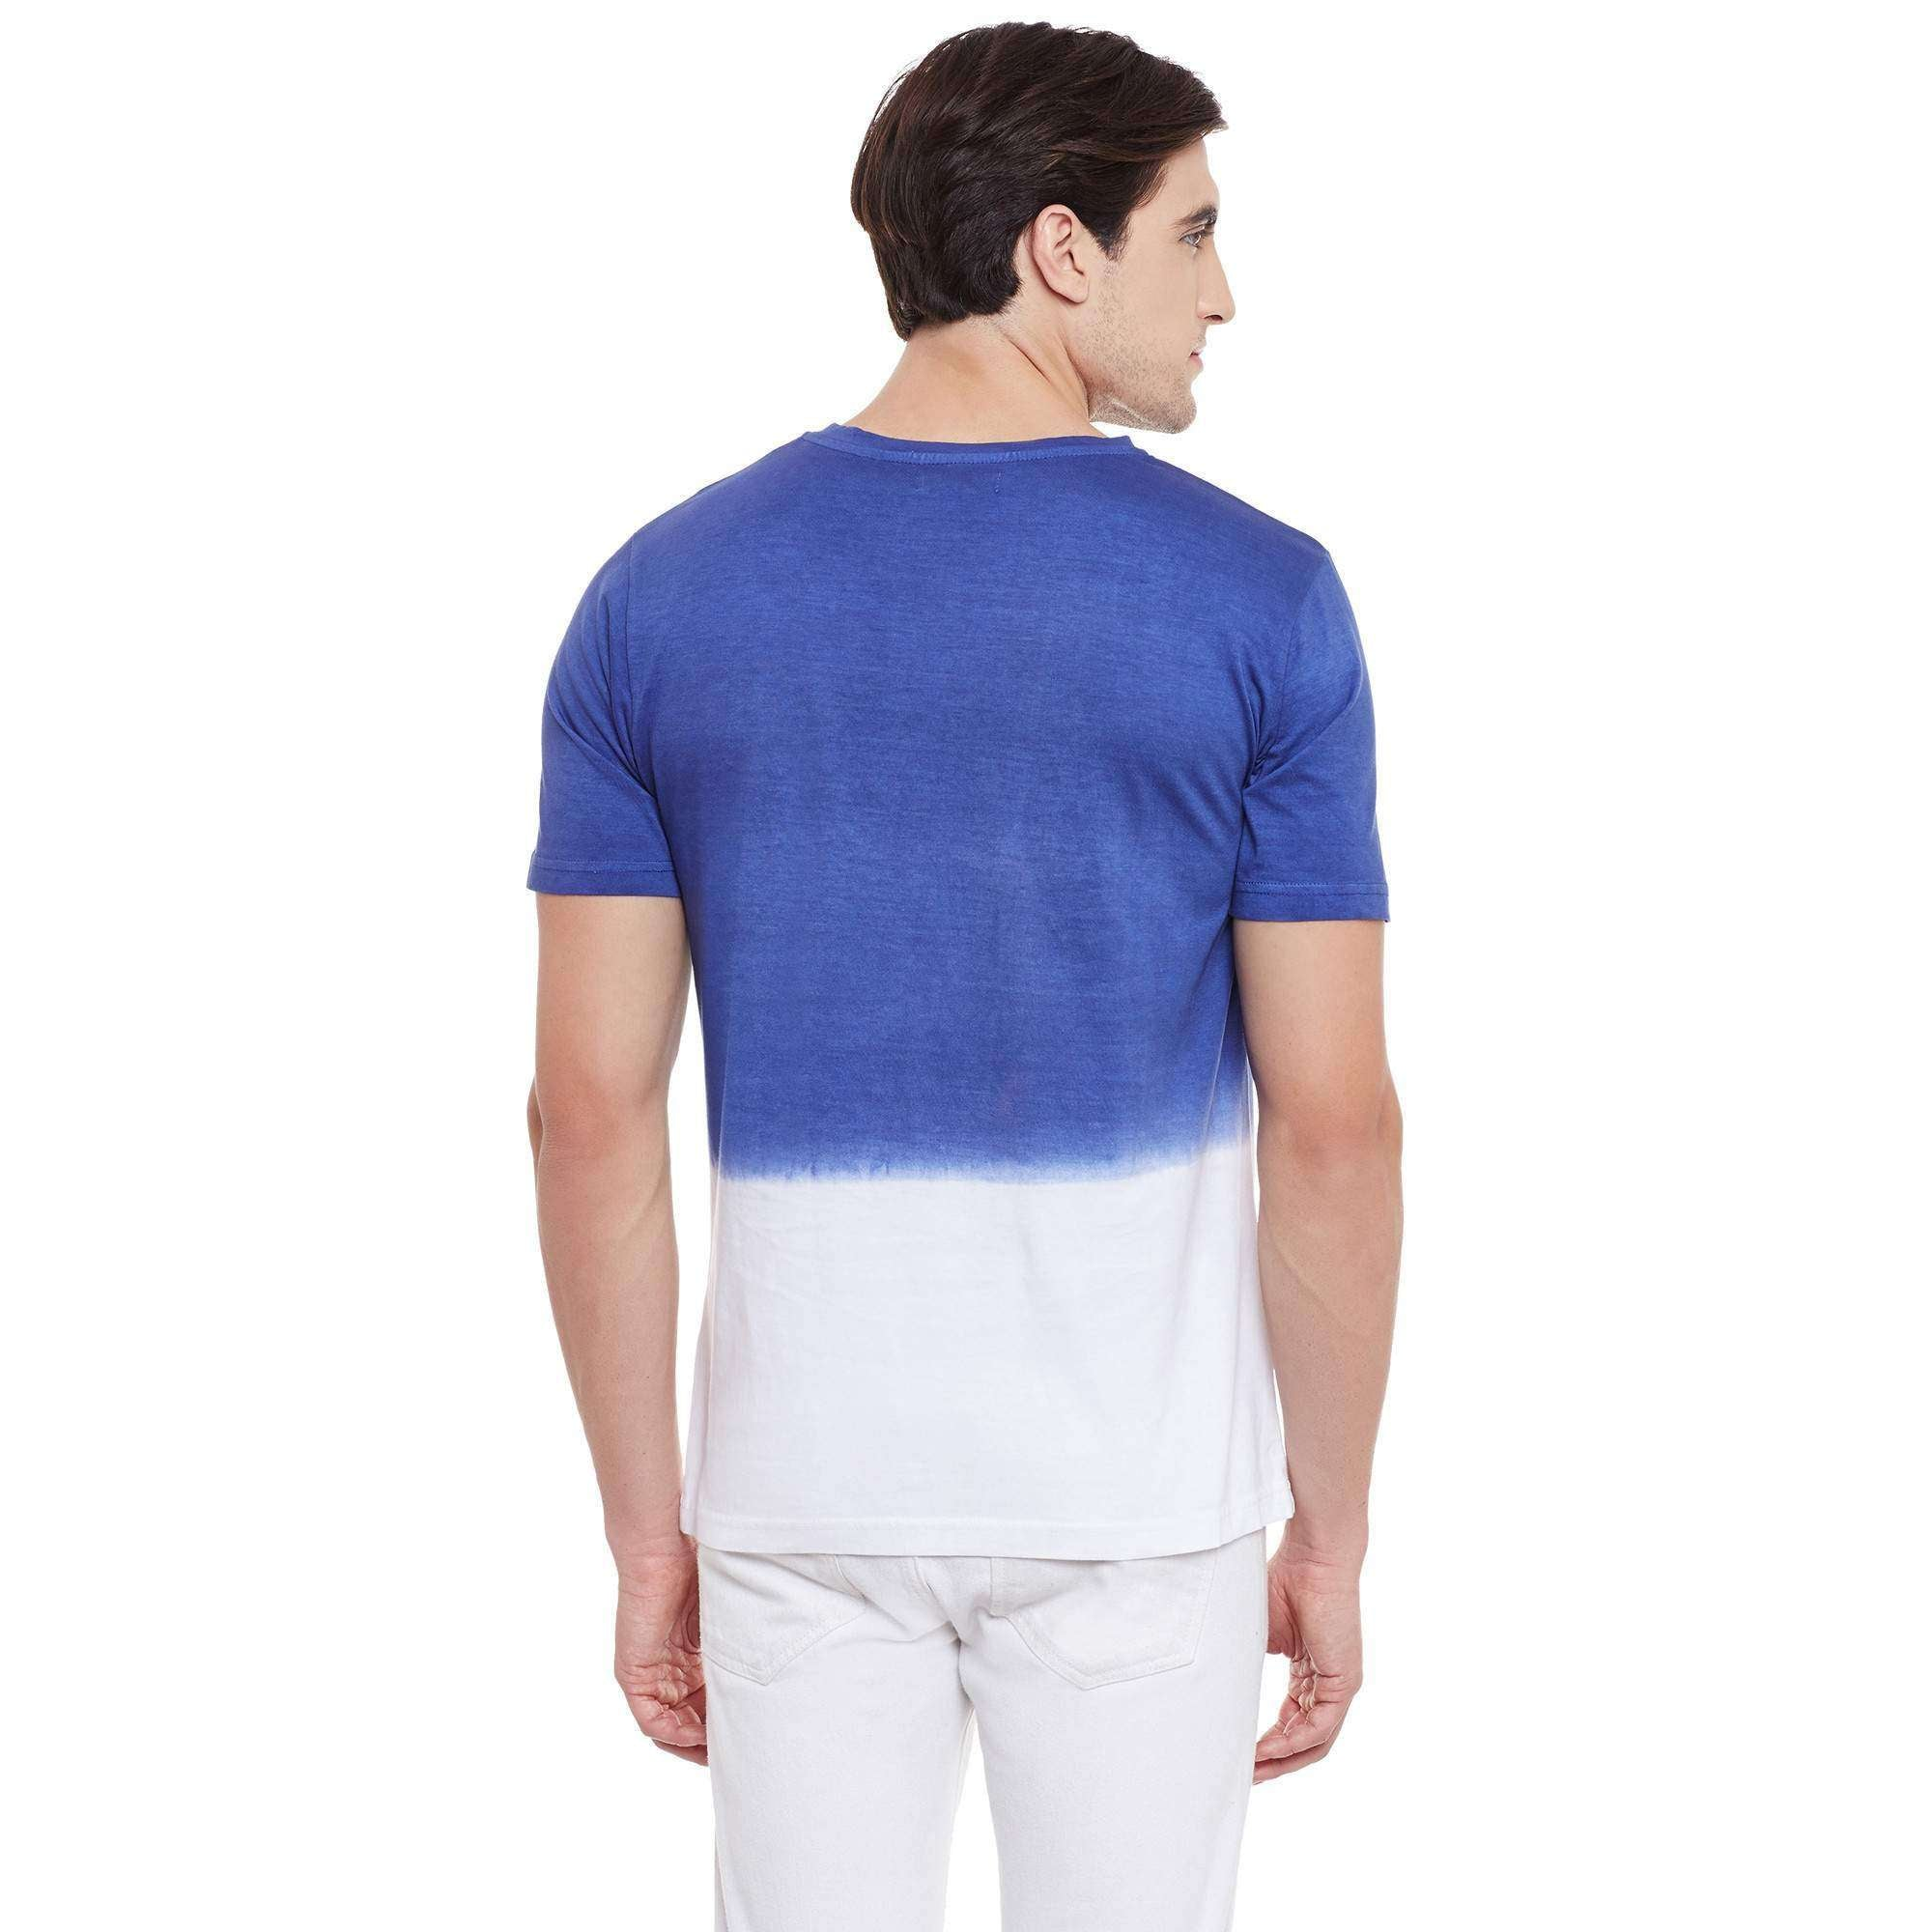 Half Sleeve T-shirt Ombre Dyed with Chest Print Indigo & Ivory